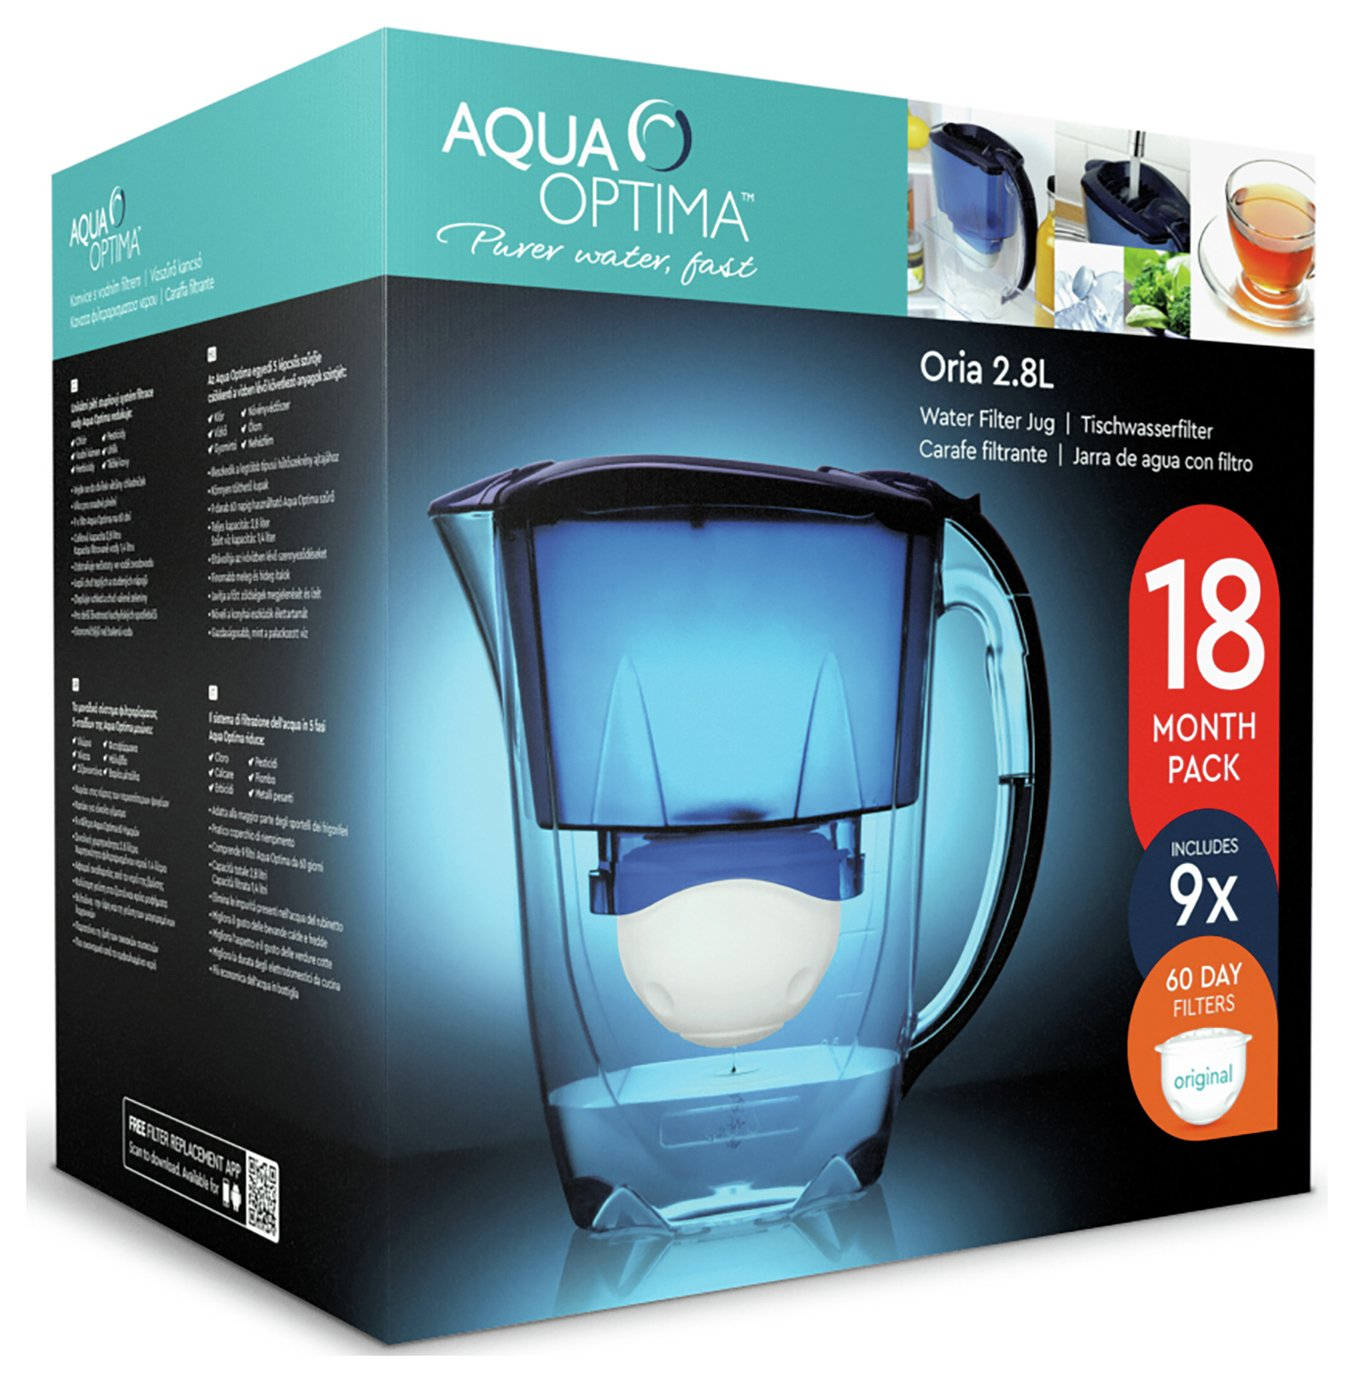 Image of Aqua Optima - Oria Blue Jug with Cartridges - 9 Pack